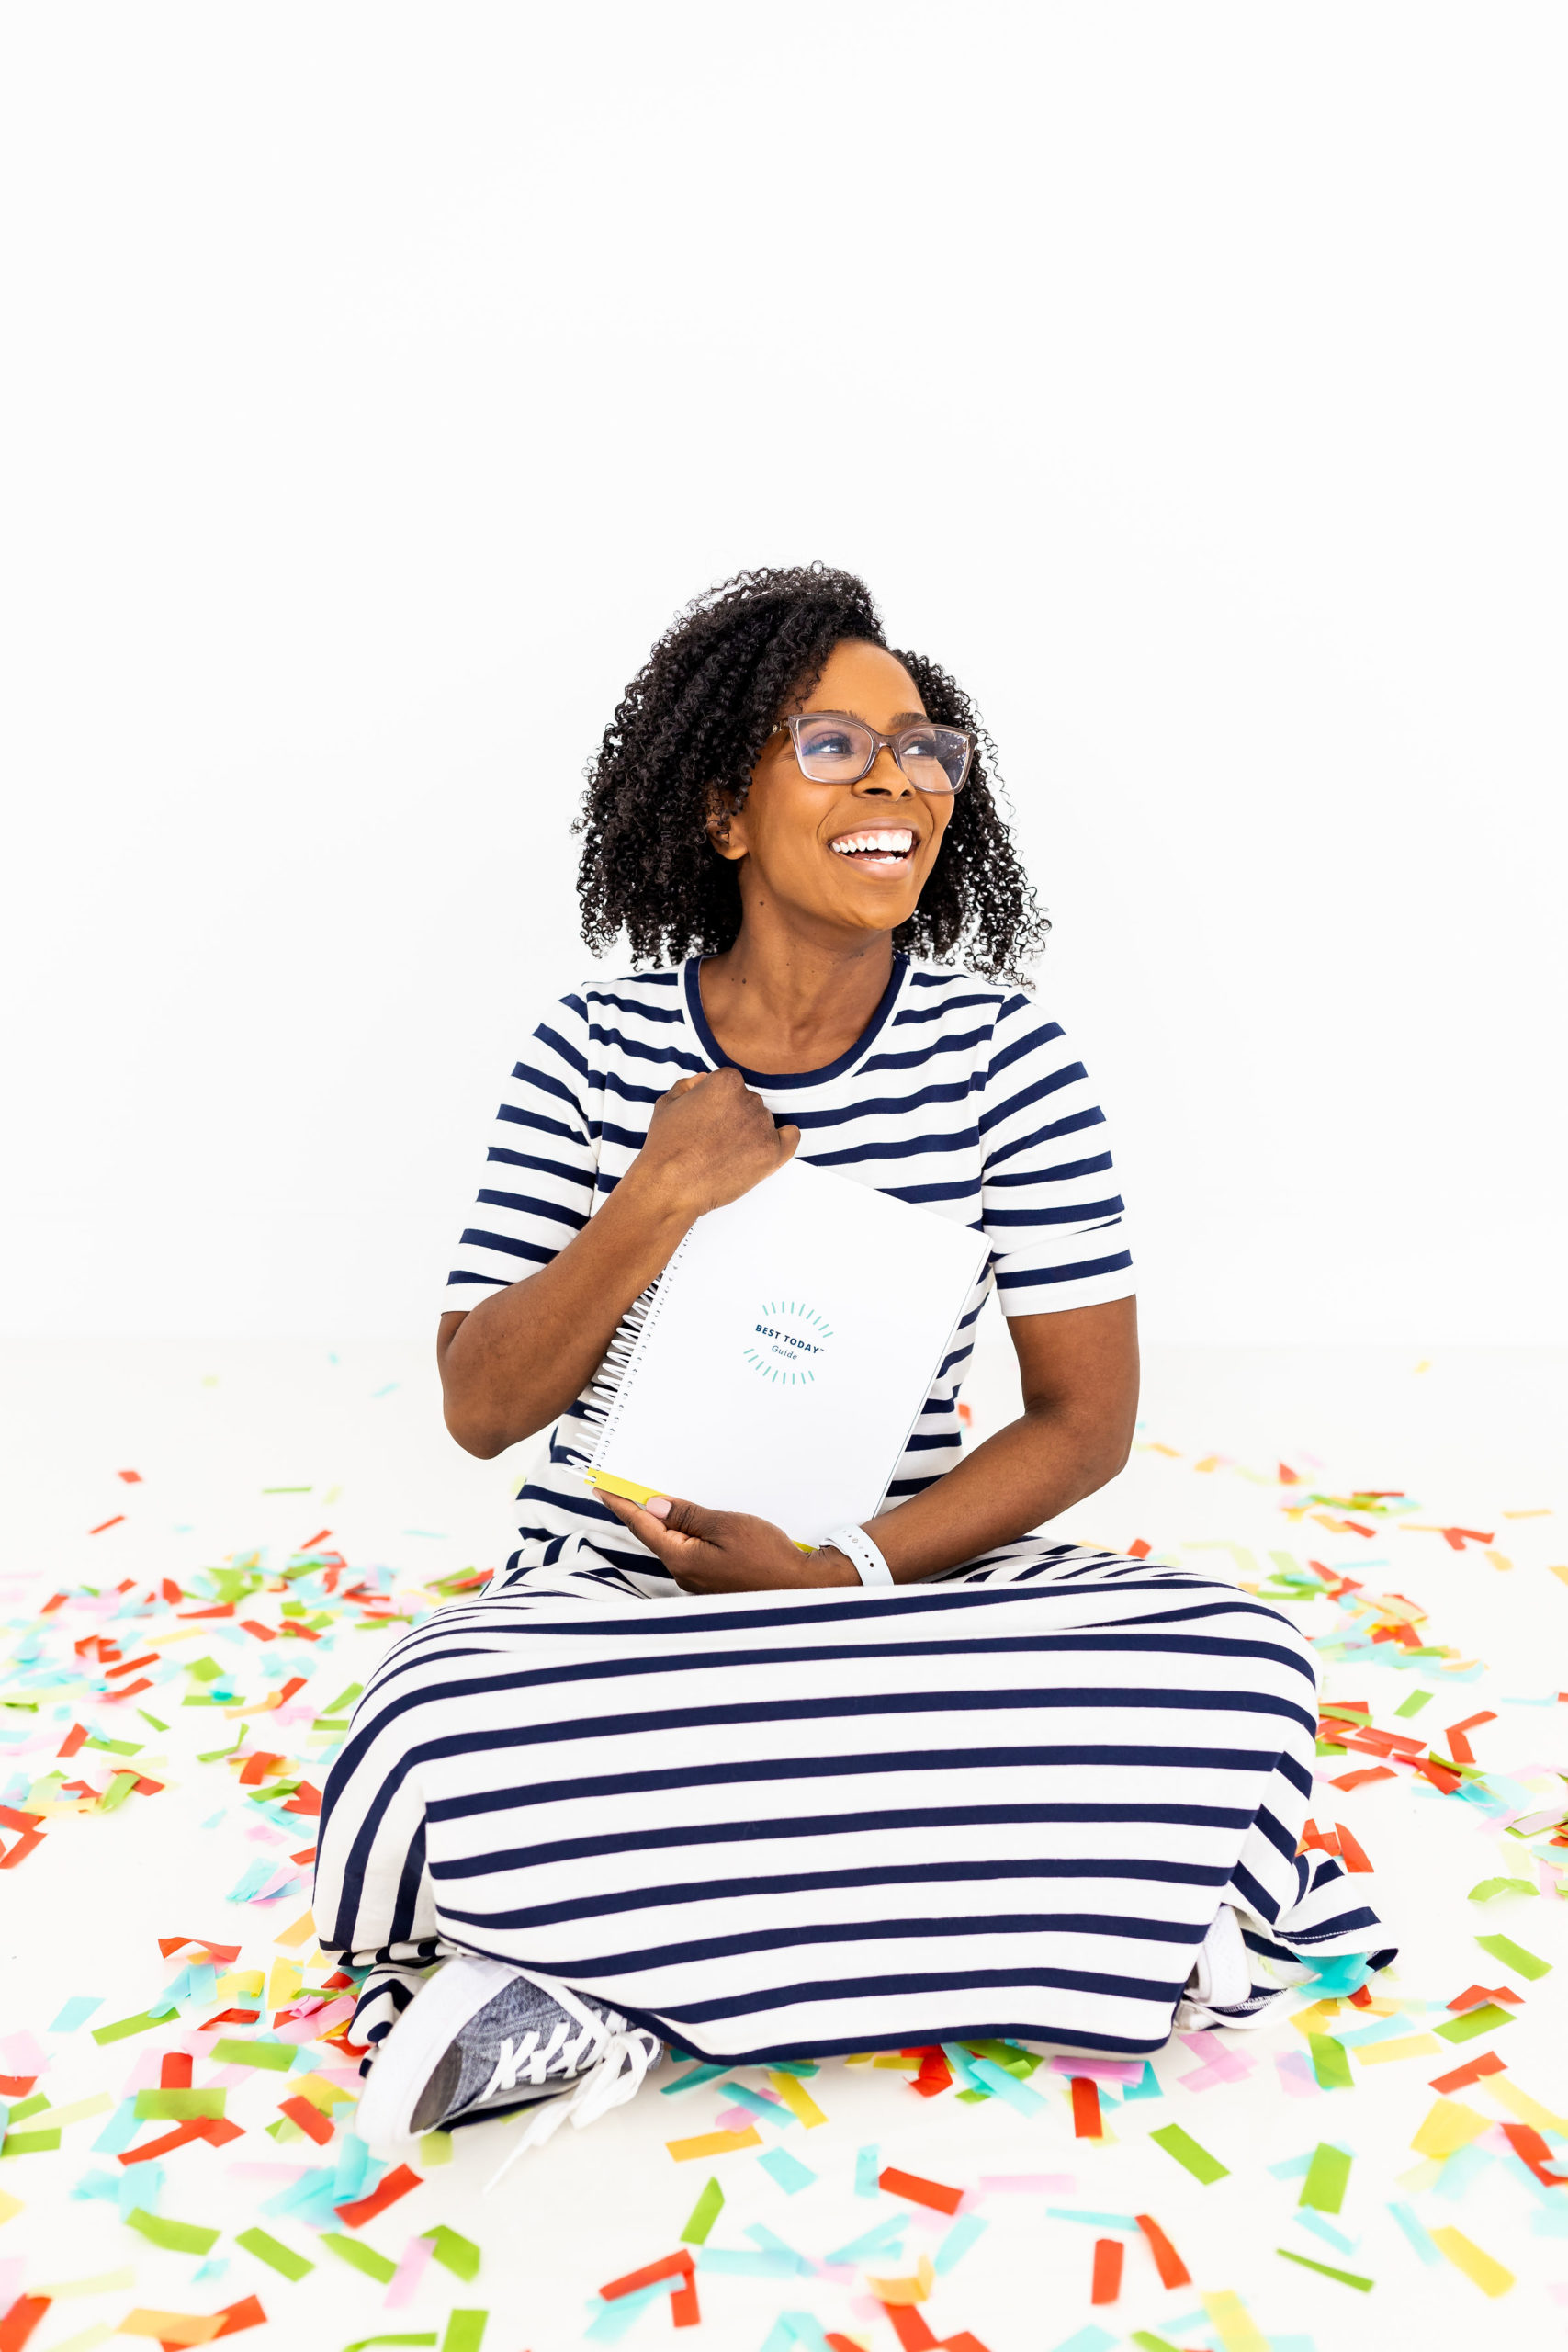 Shunta Grant of The Best Today Brand holding the Best Today Guide while sitting on a confetti covered floor